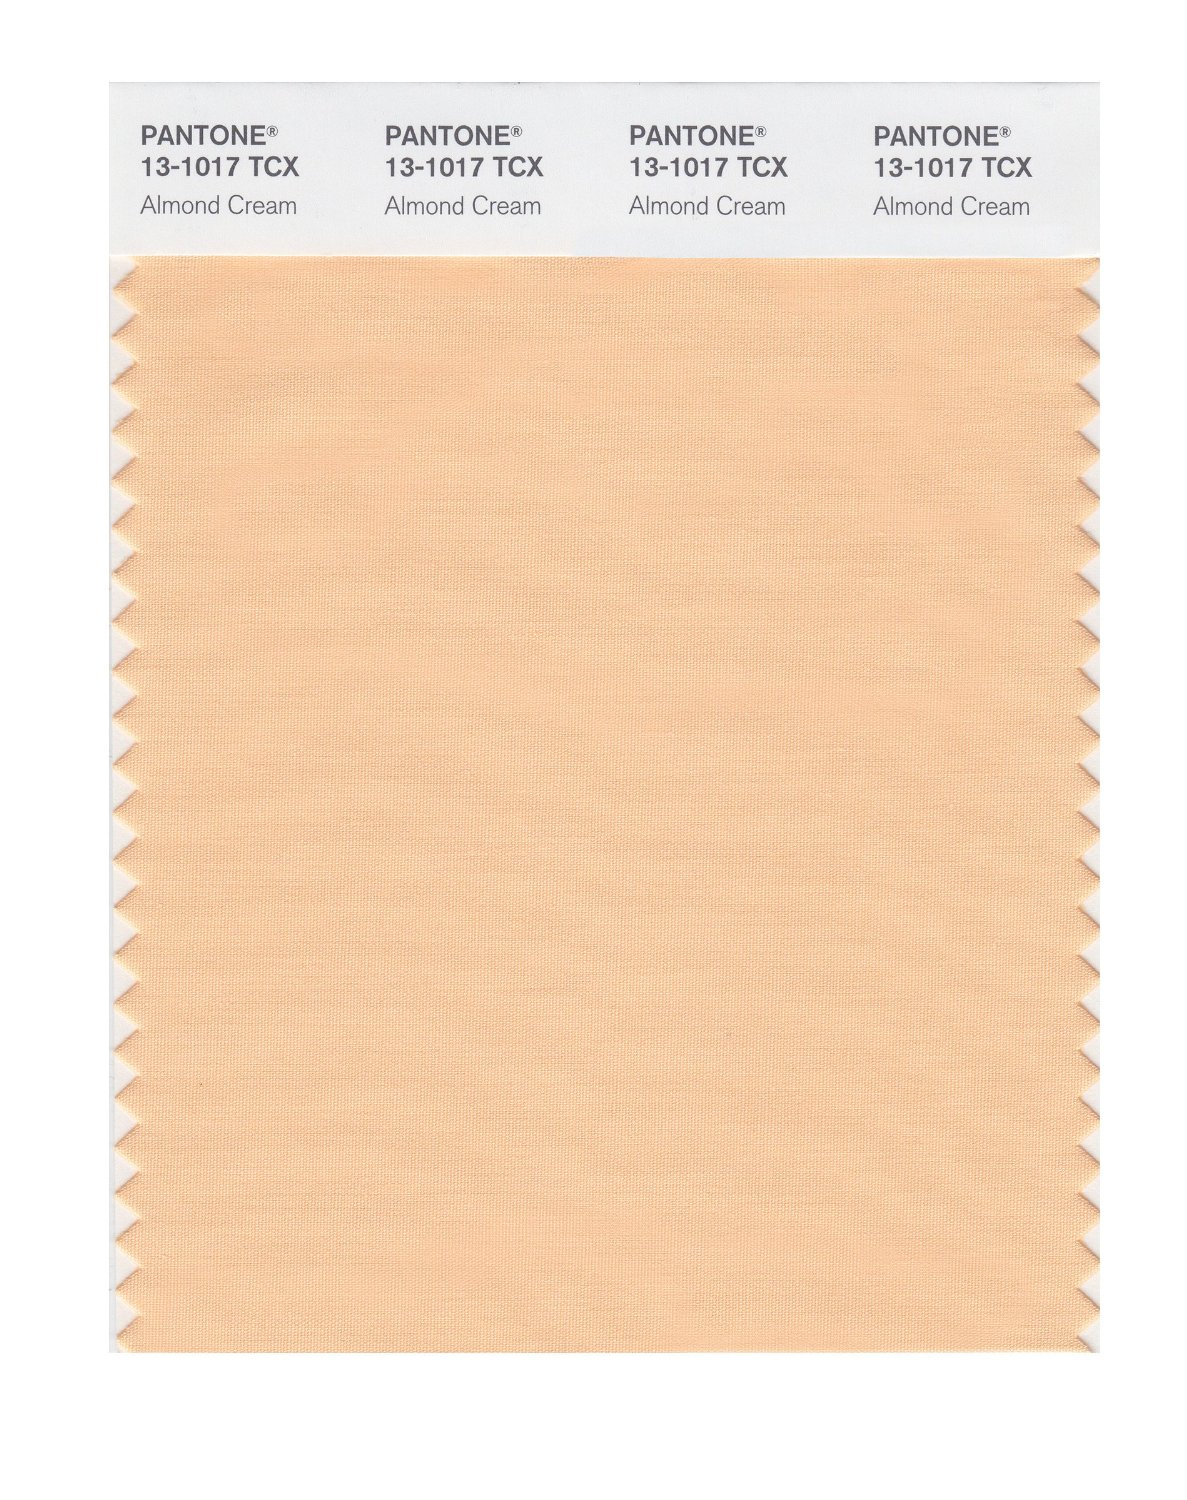 Pantone Smart Swatch 13-1017 Almond Cream